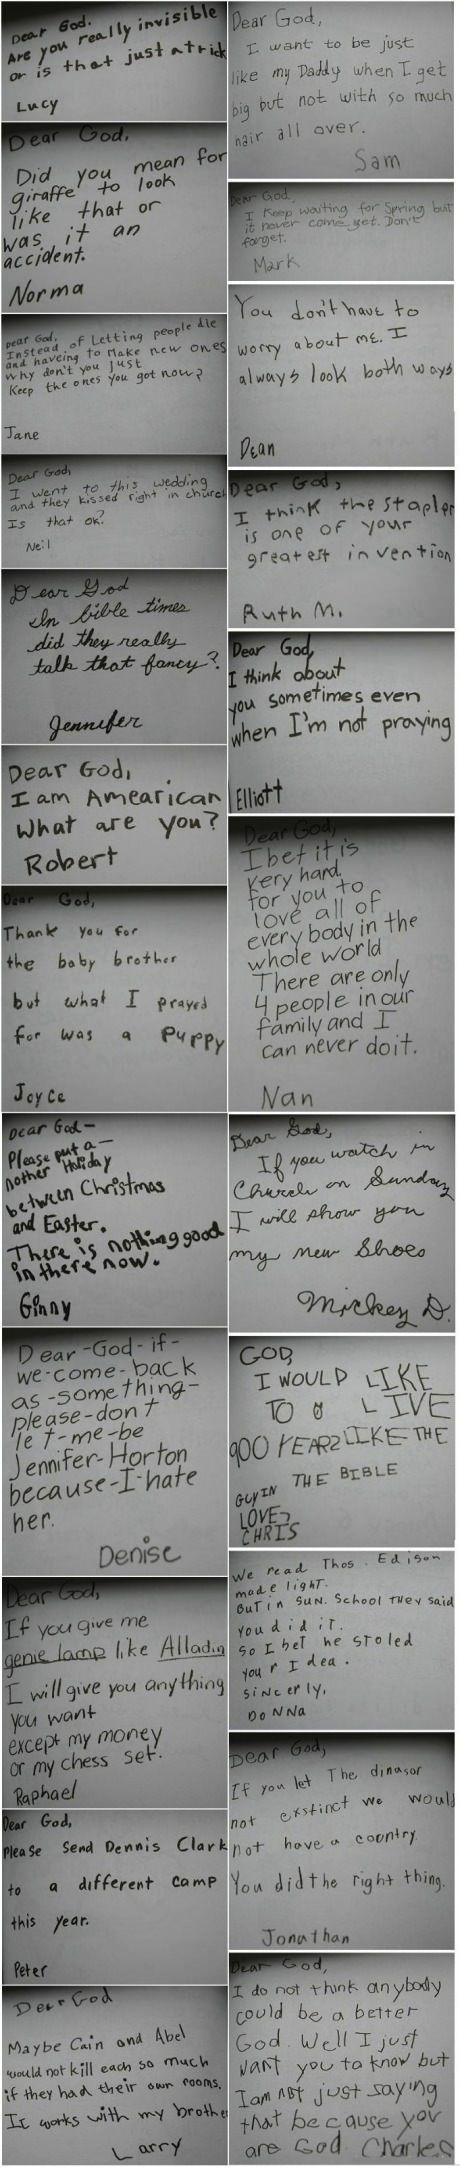 When kids write letters to God, this is adorable! i wish i was a little kid again